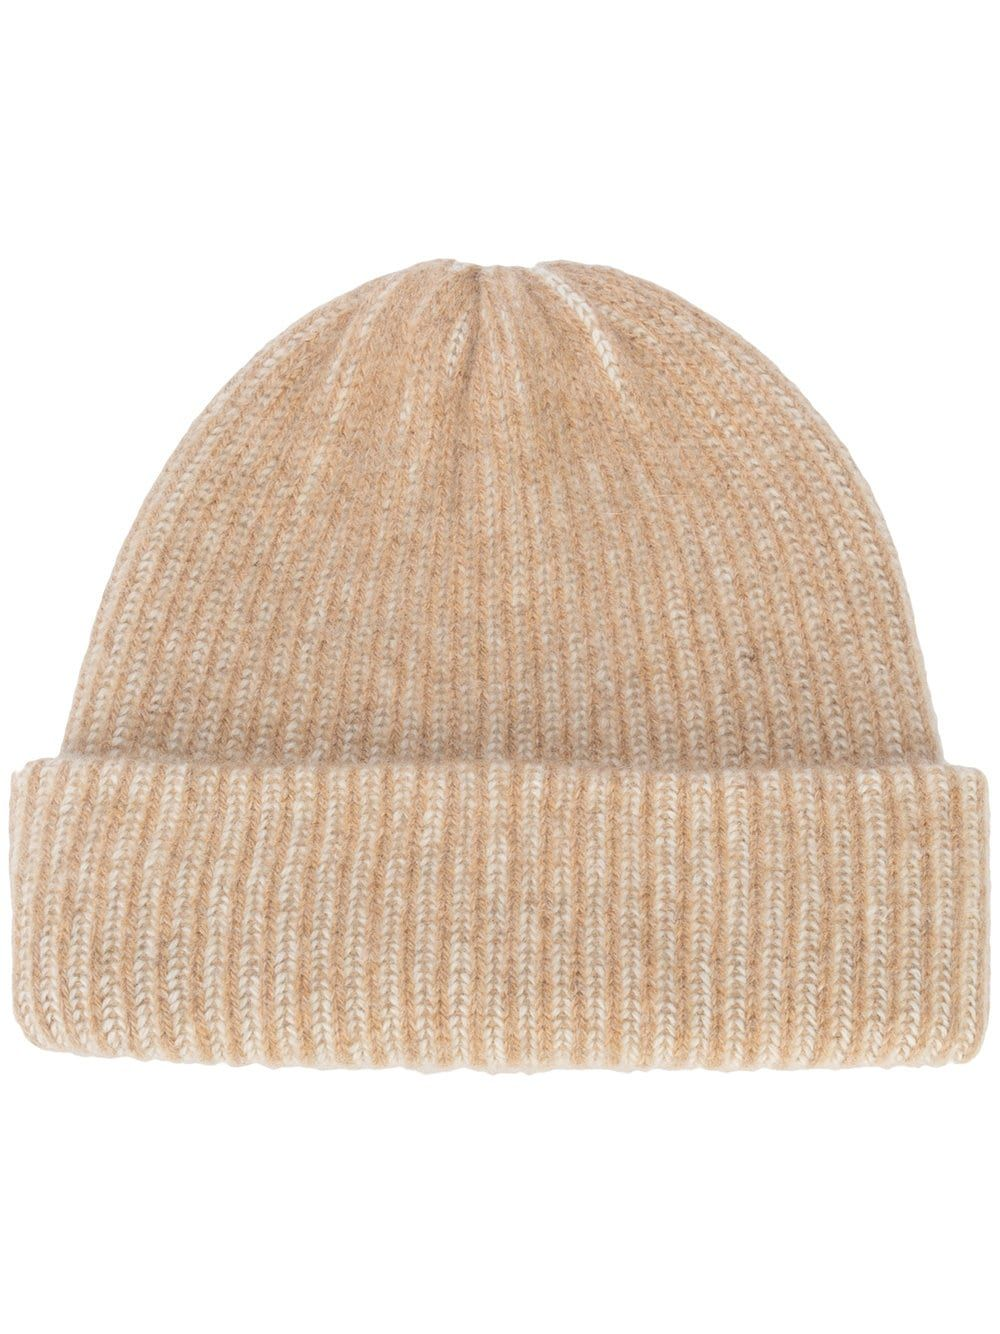 86b412440 The Elder Statesman Cashmere Watchman Hat in 2019 | Products | Hats ...